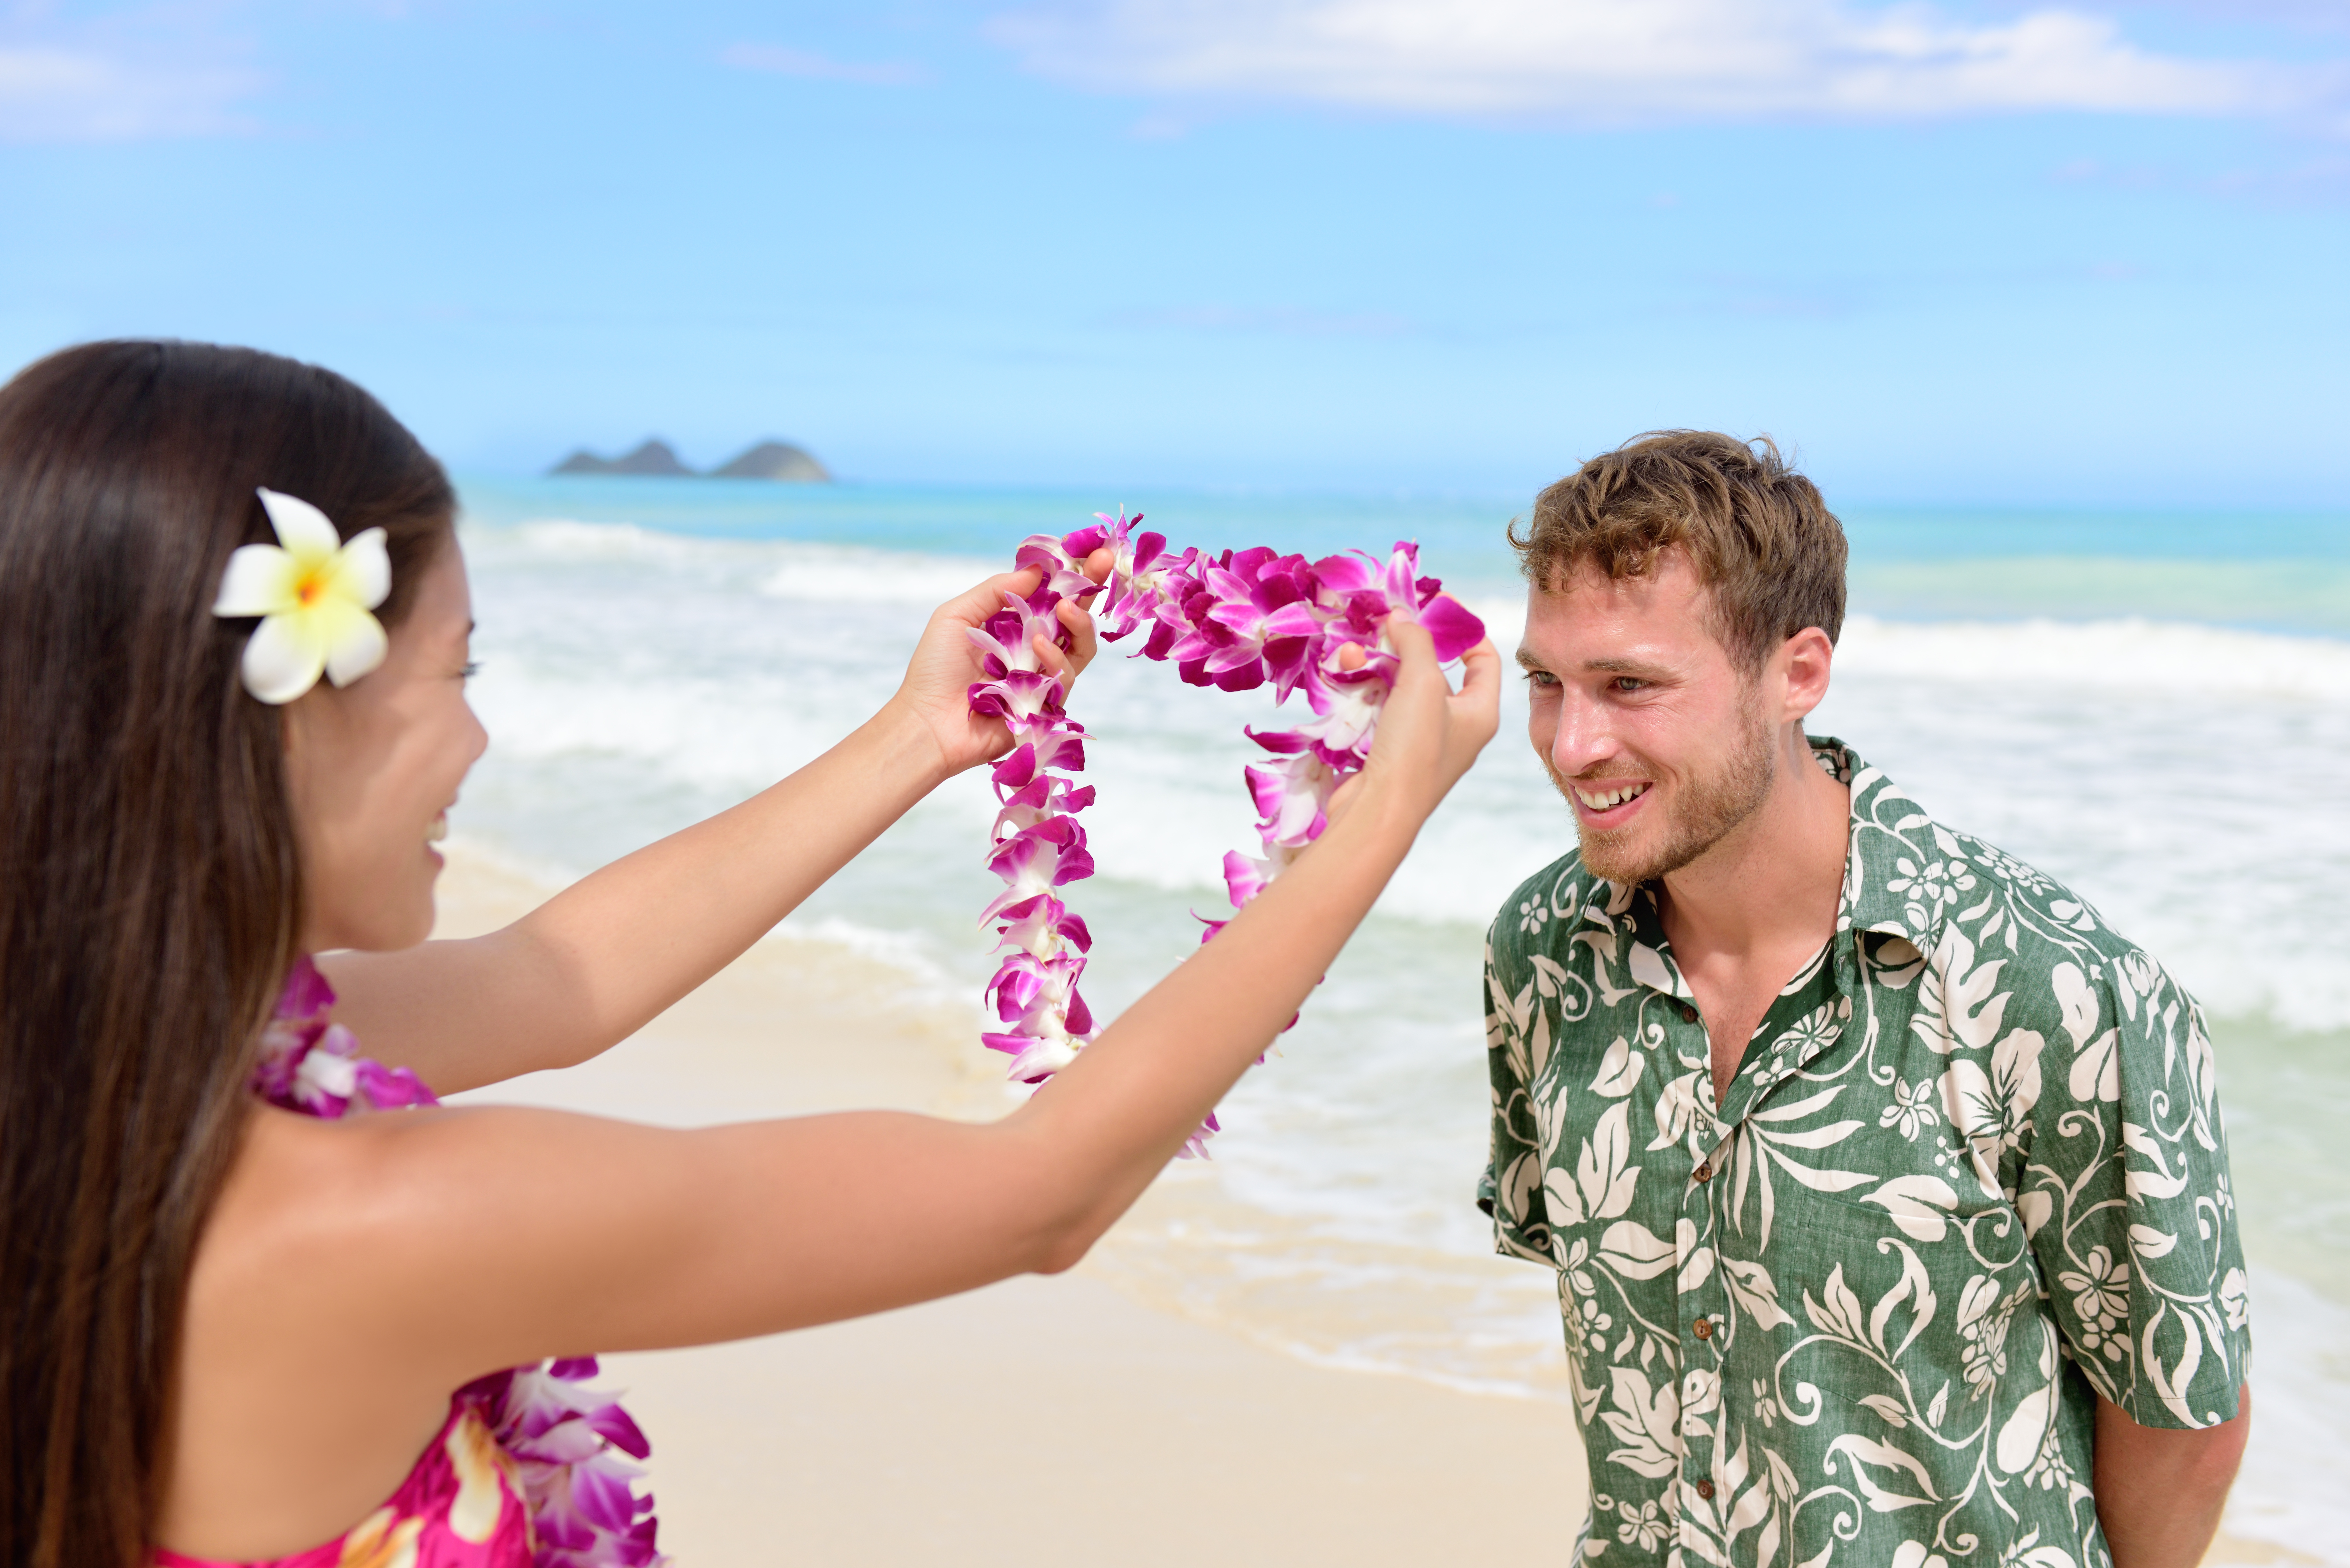 Hawaiian woman presenting a lei to a visitor on the beach.